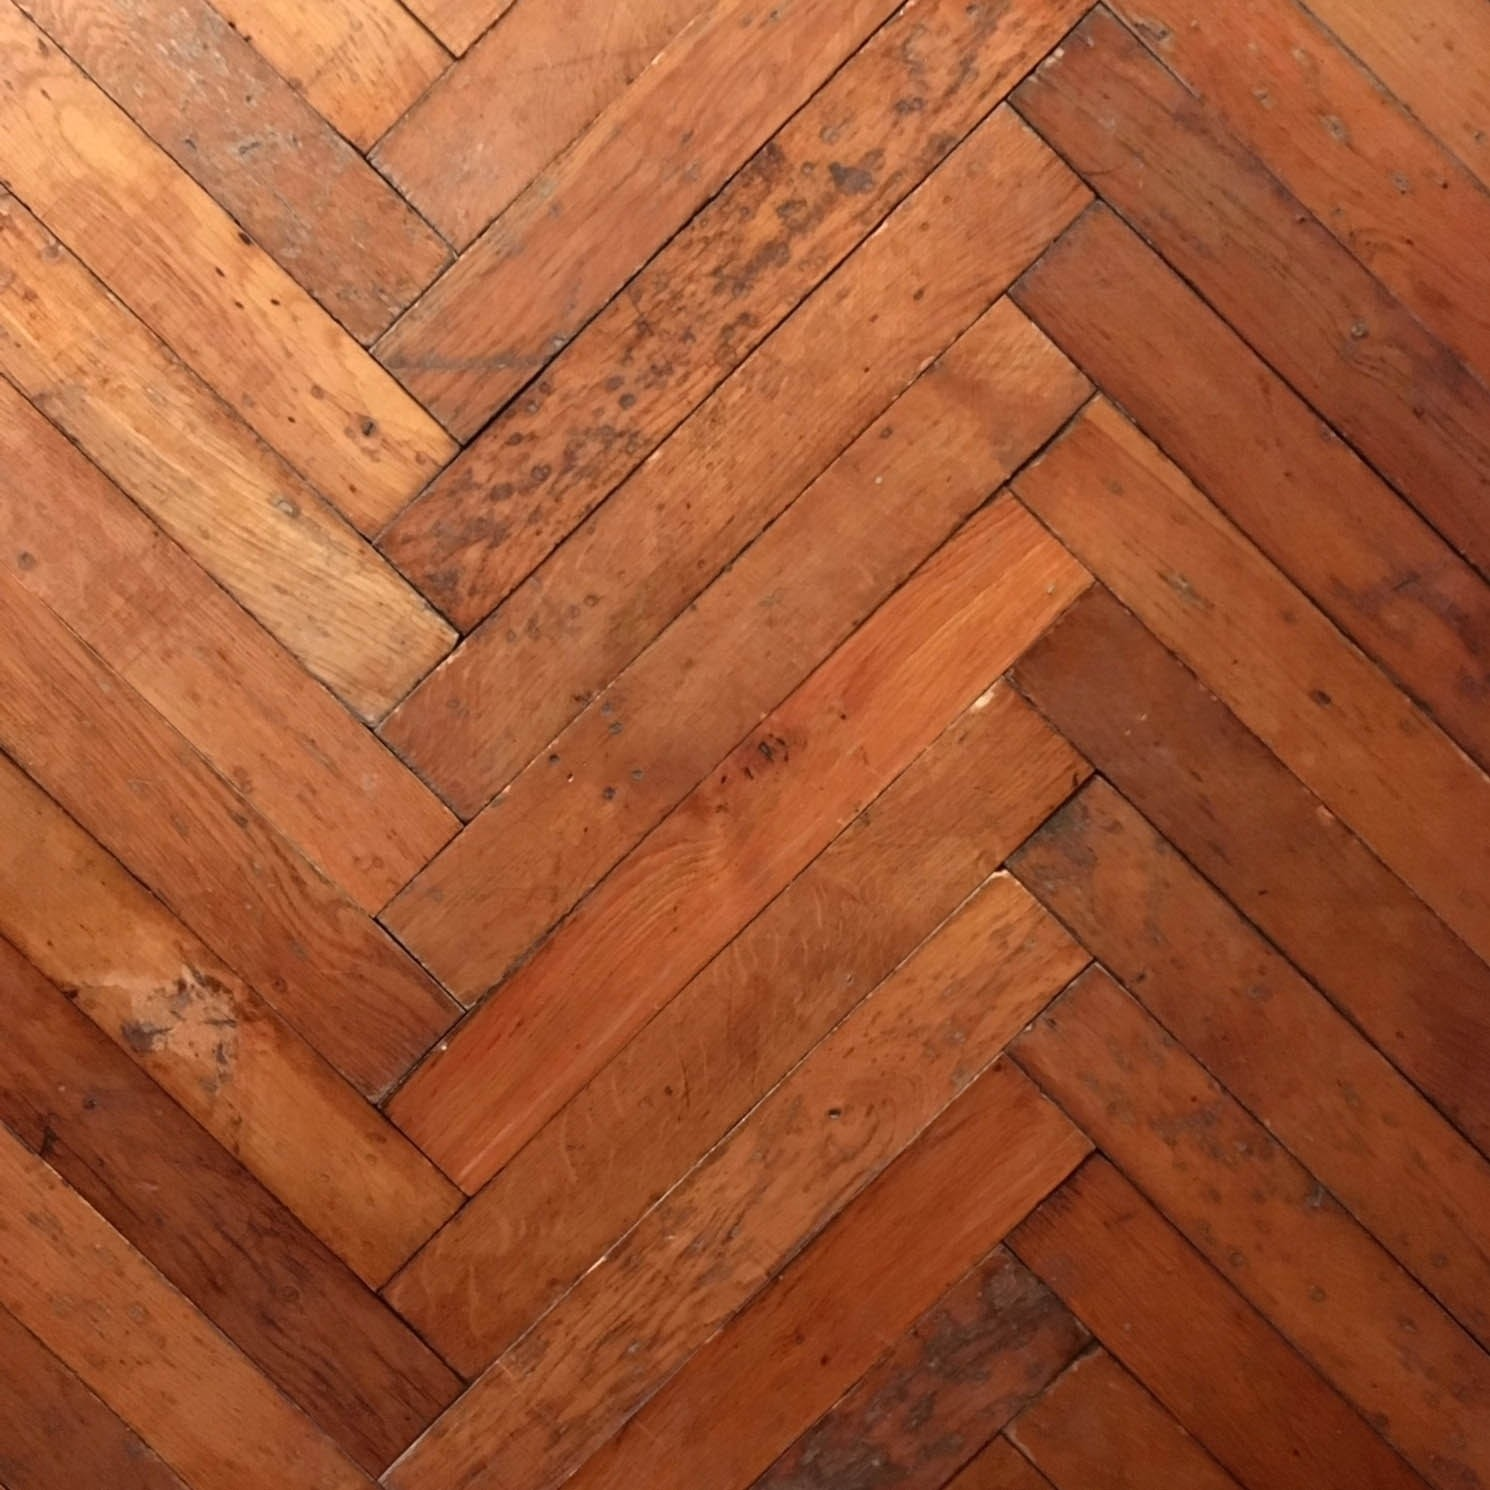 Early 20th century fishbone floorboards